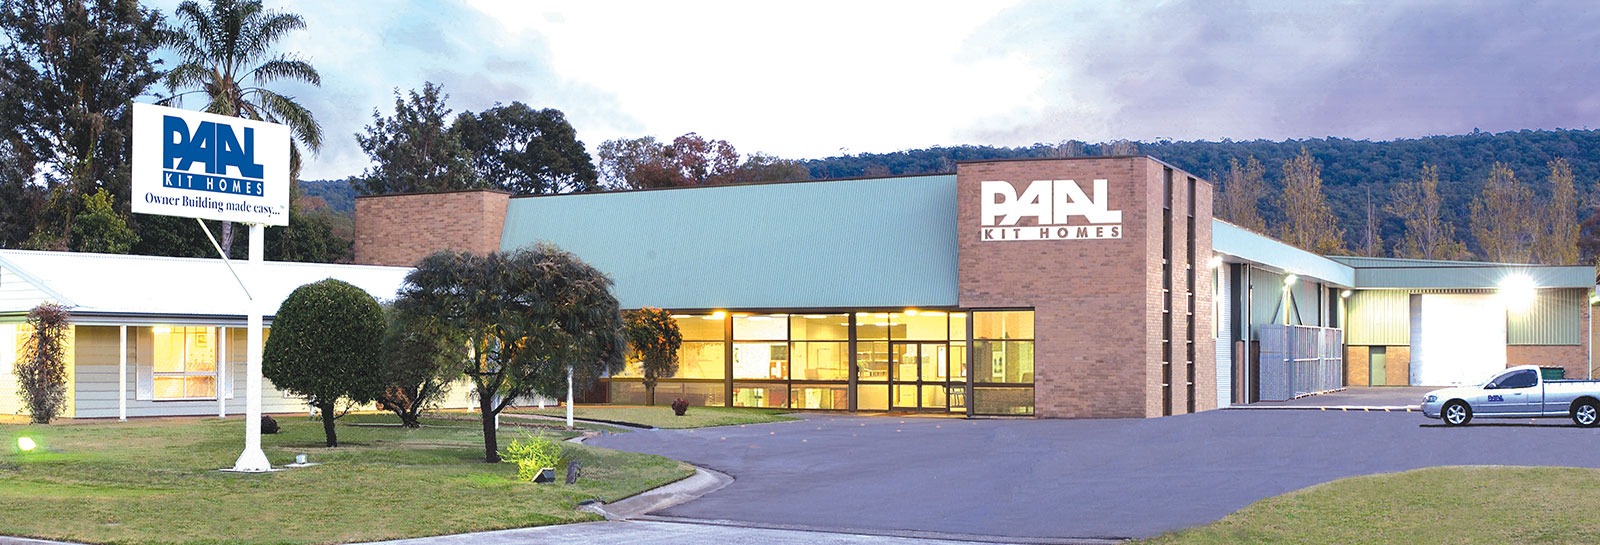 PAAL Kit Home factory located in Emu Plains NSW Australia. PAAL Kit Homes has been in business for 48 years, helping thousands of home builders achieve their dream homes.